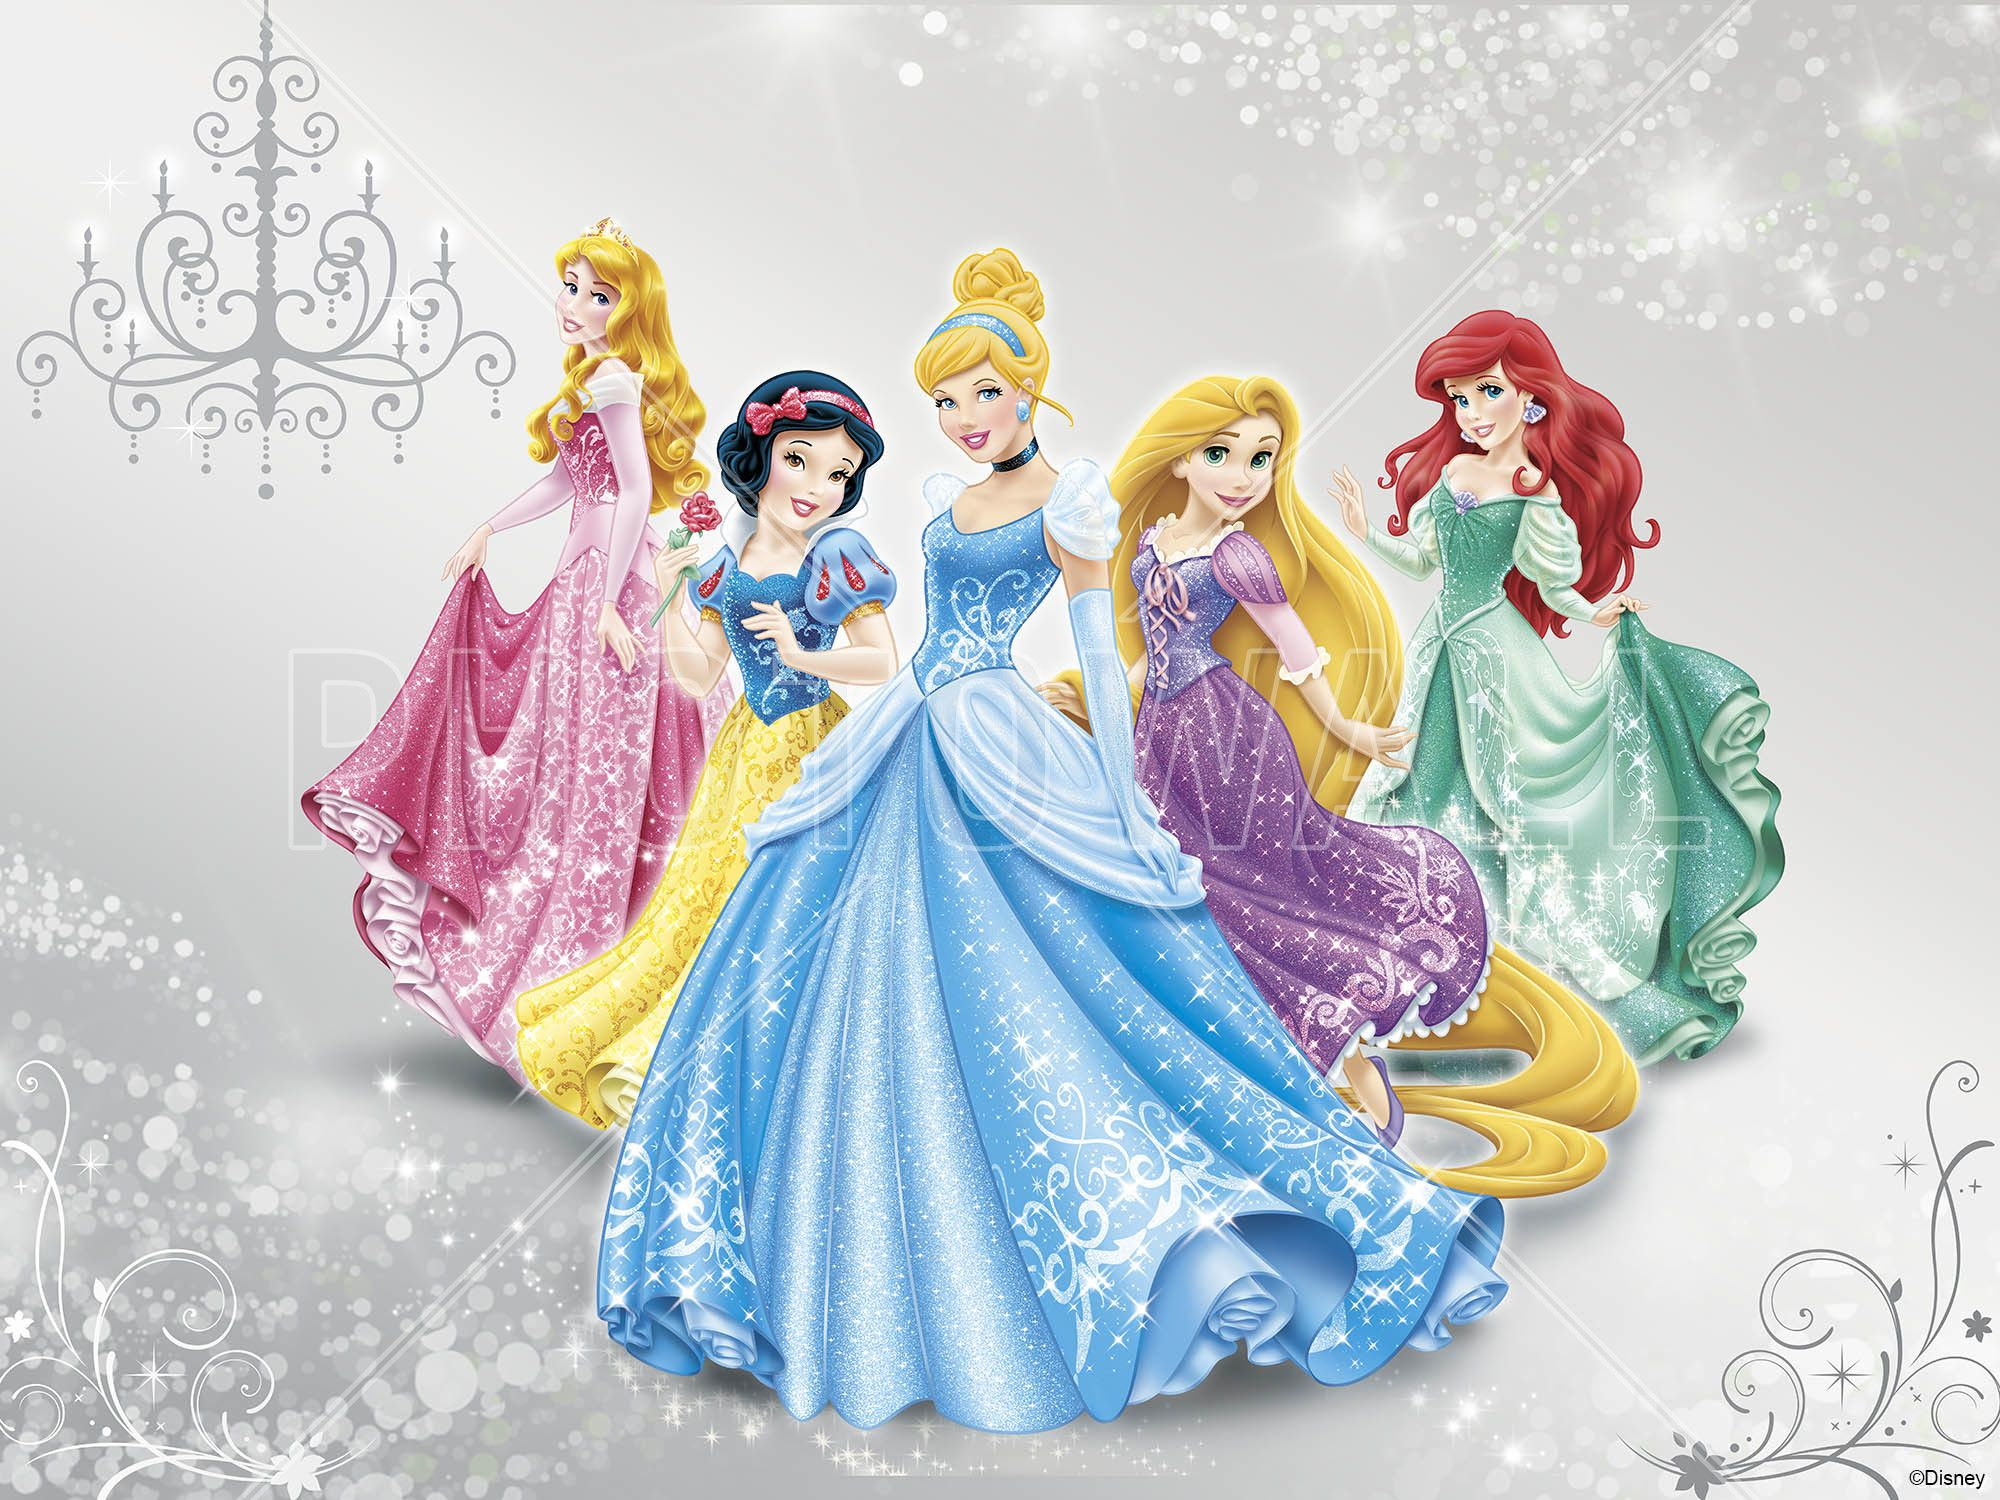 Cinderella Disney Princess Wallpapers Full Hd